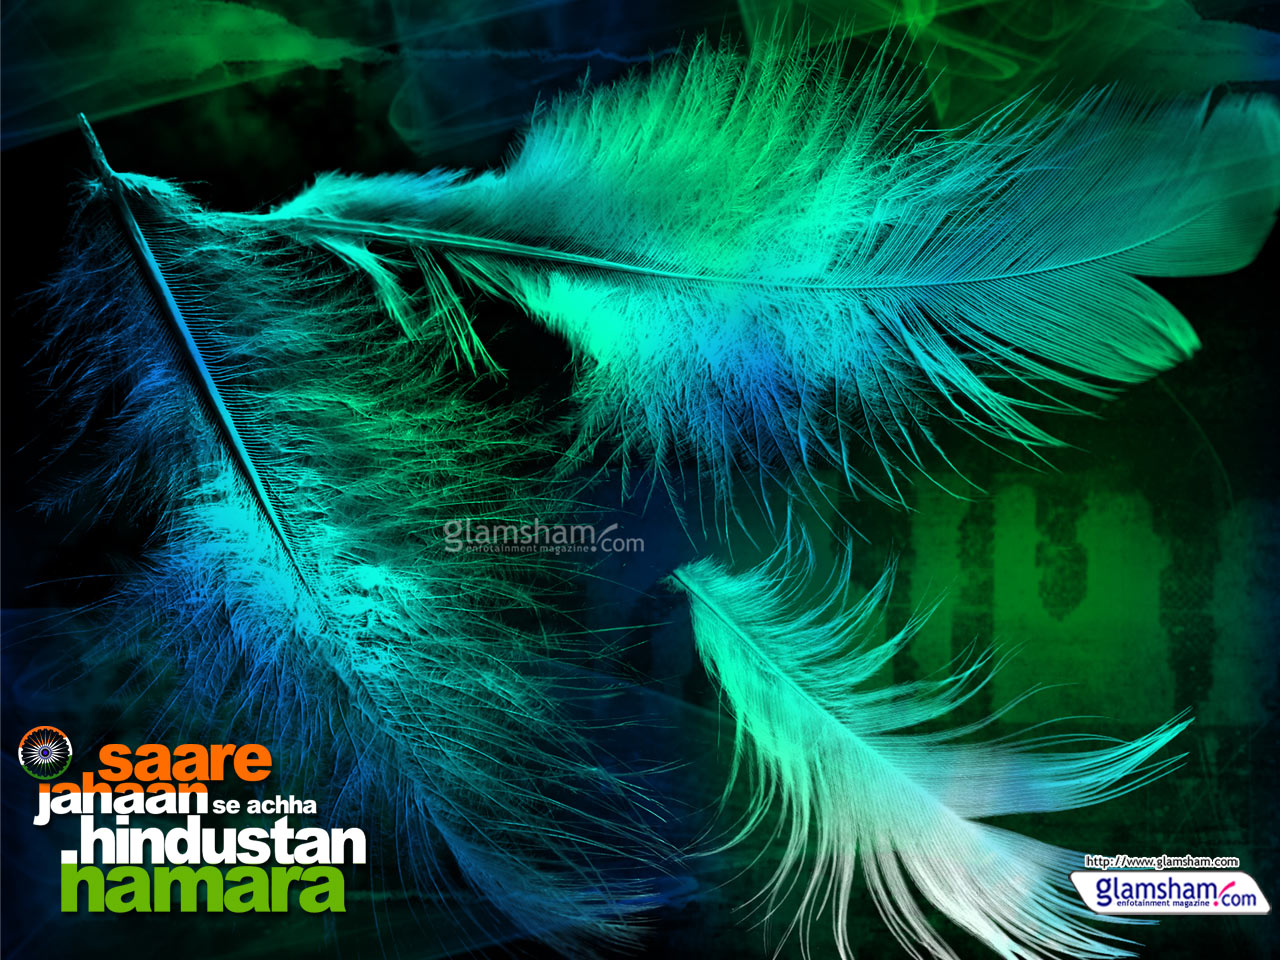 http://4.bp.blogspot.com/-G7g8Bd4VM54/UP_RJUdmSjI/AAAAAAAAGt8/H-L-TO4F0kM/s1600/republic-day-wallpaper-08-12x9.jpg